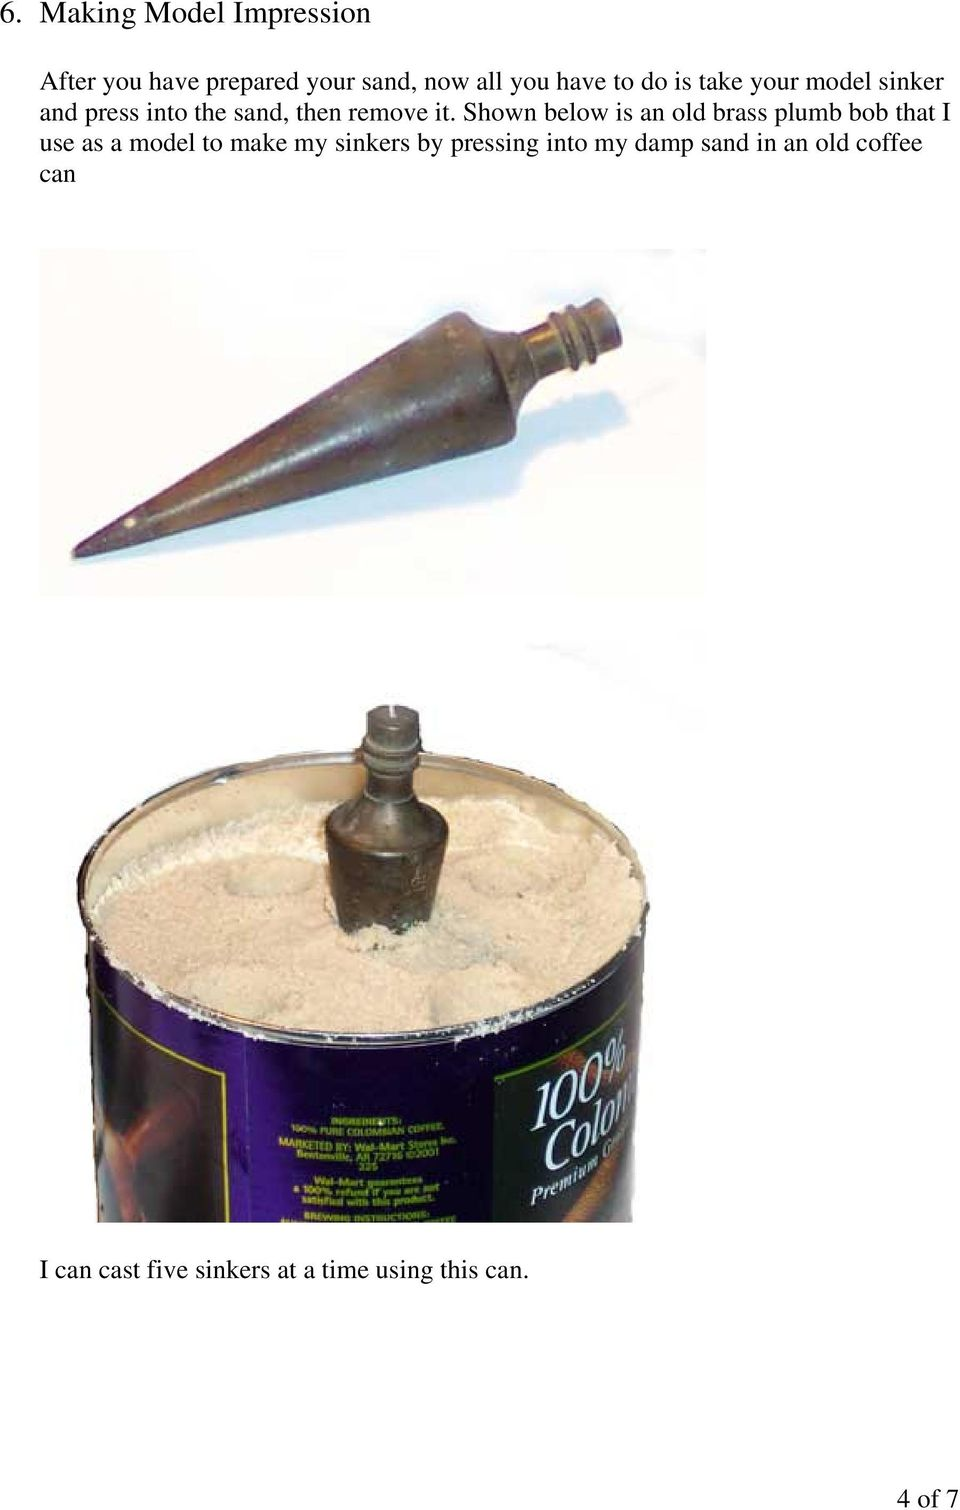 Shown below is an old brass plumb bob that I use as a model to make my sinkers by